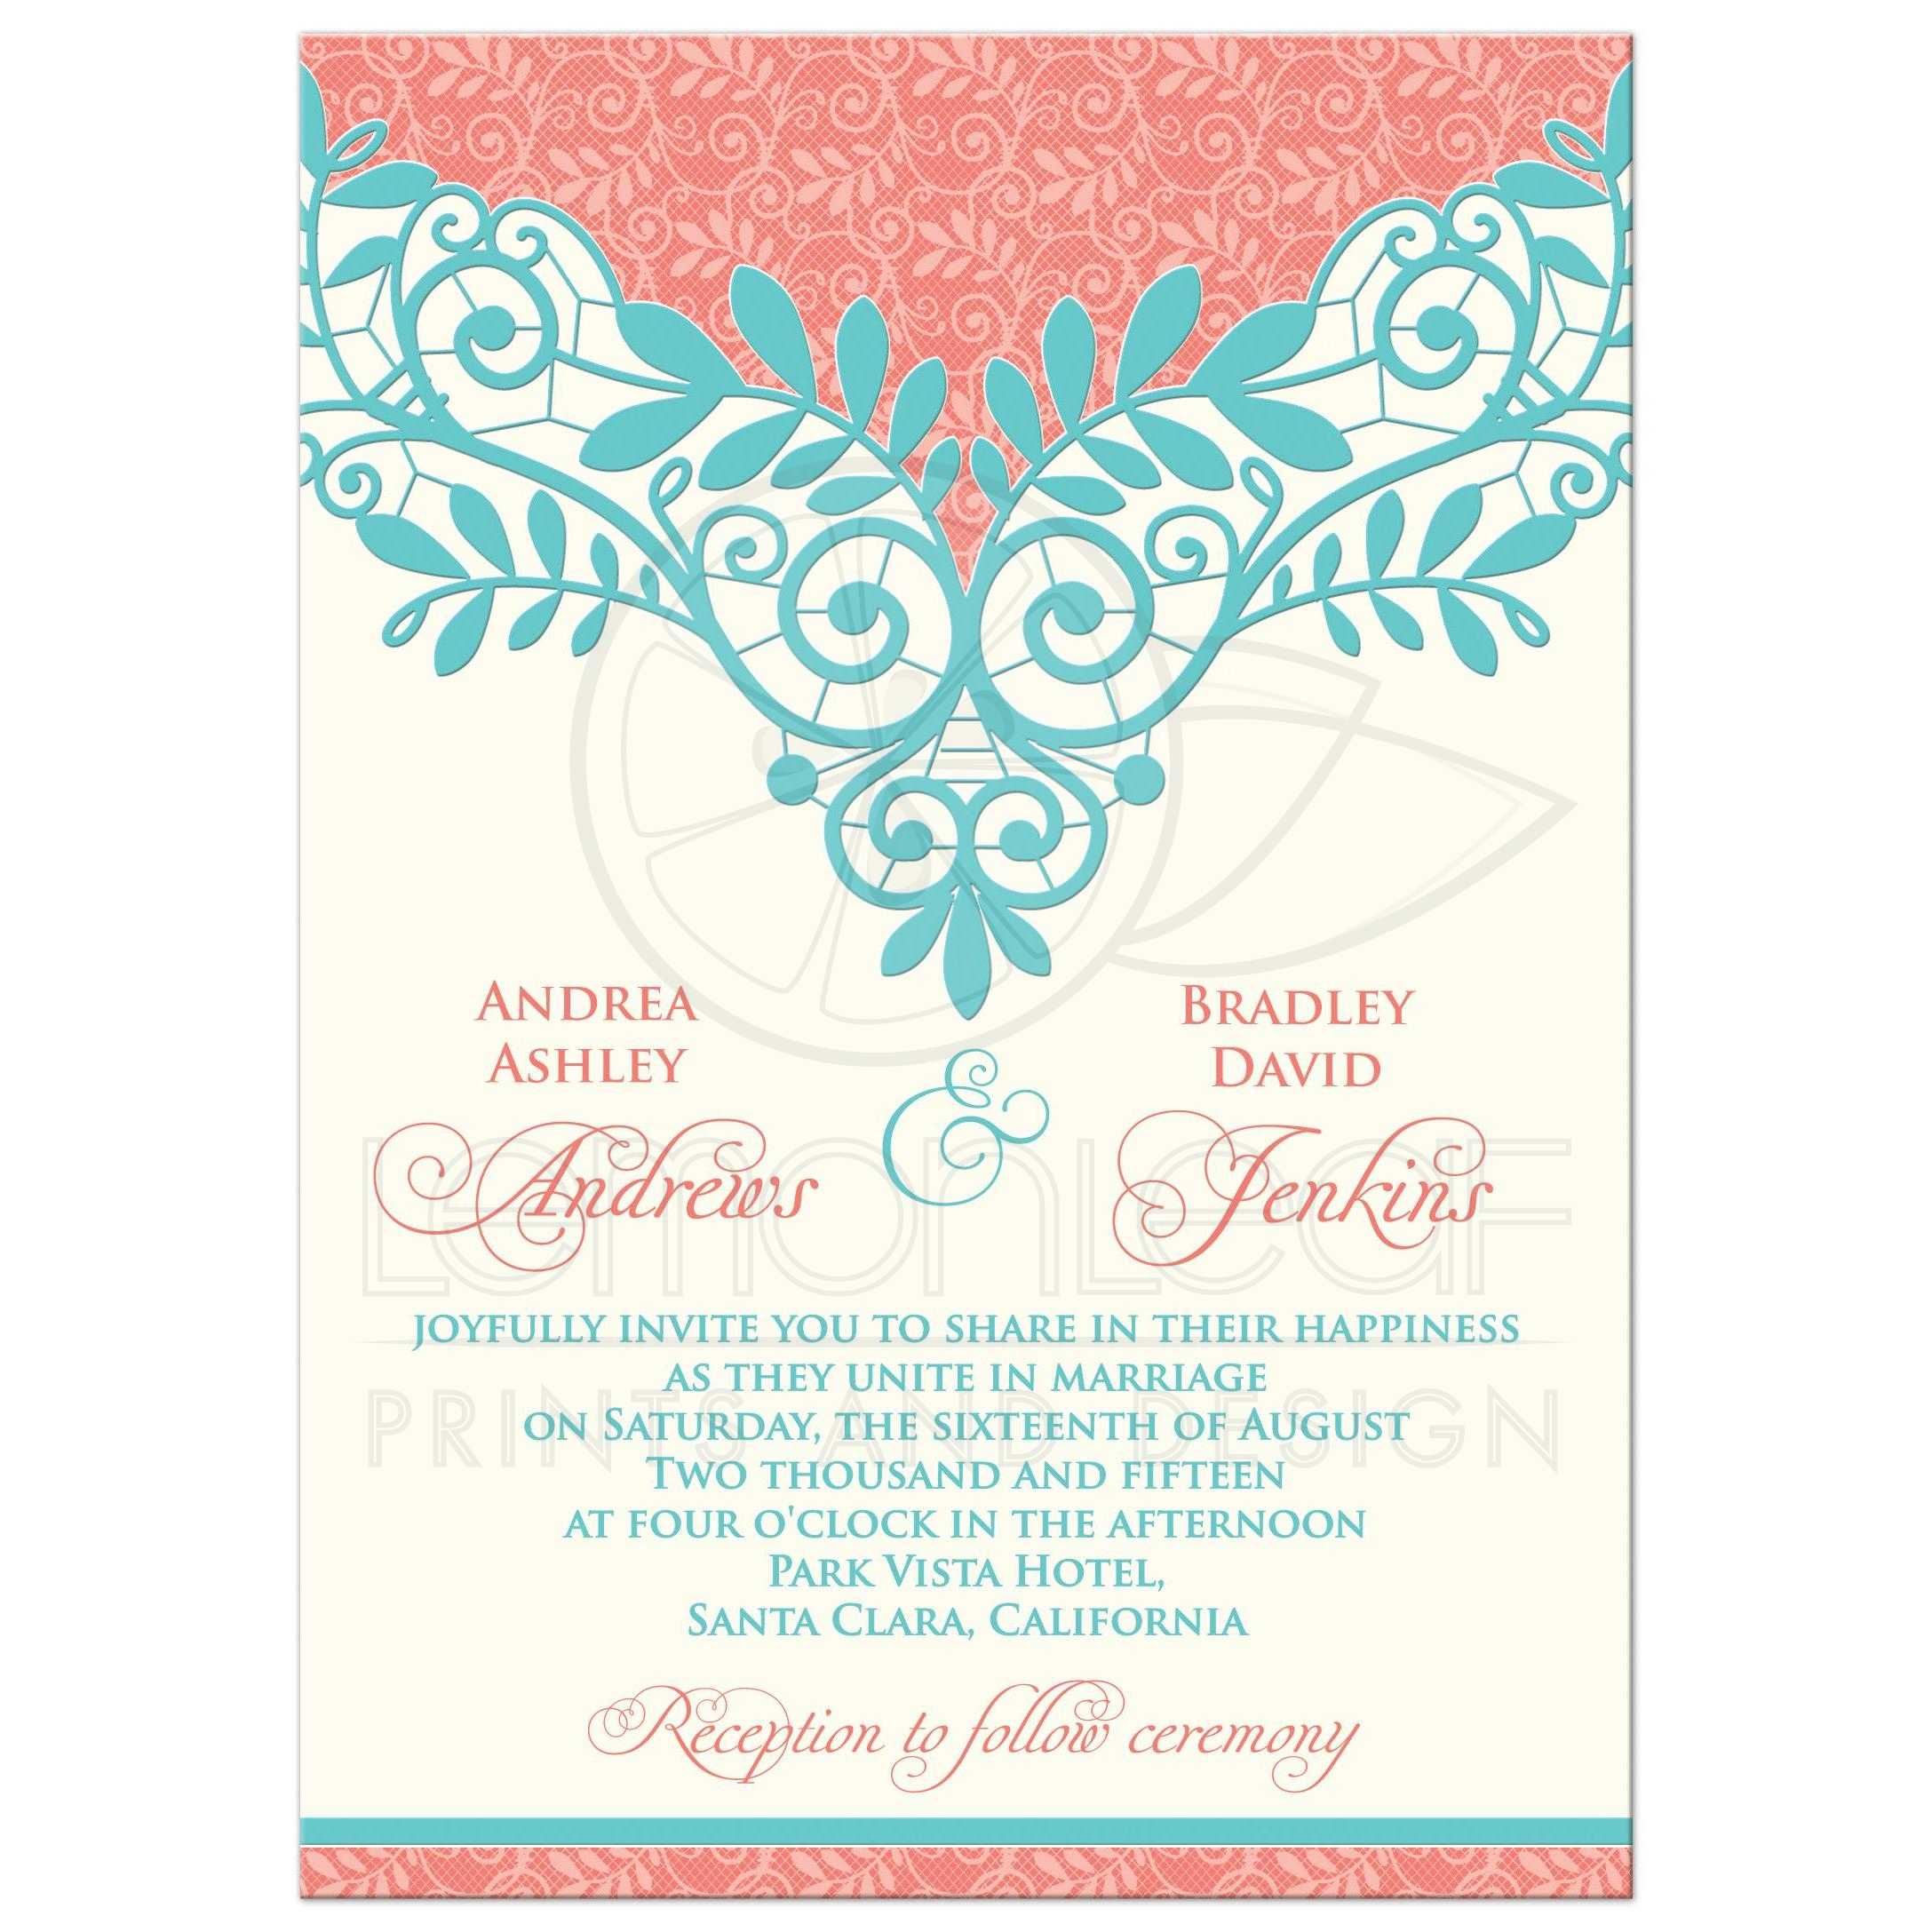 Formal Invitation Rsvp Wedding Invitation Vintage Lace Coral Turquoise